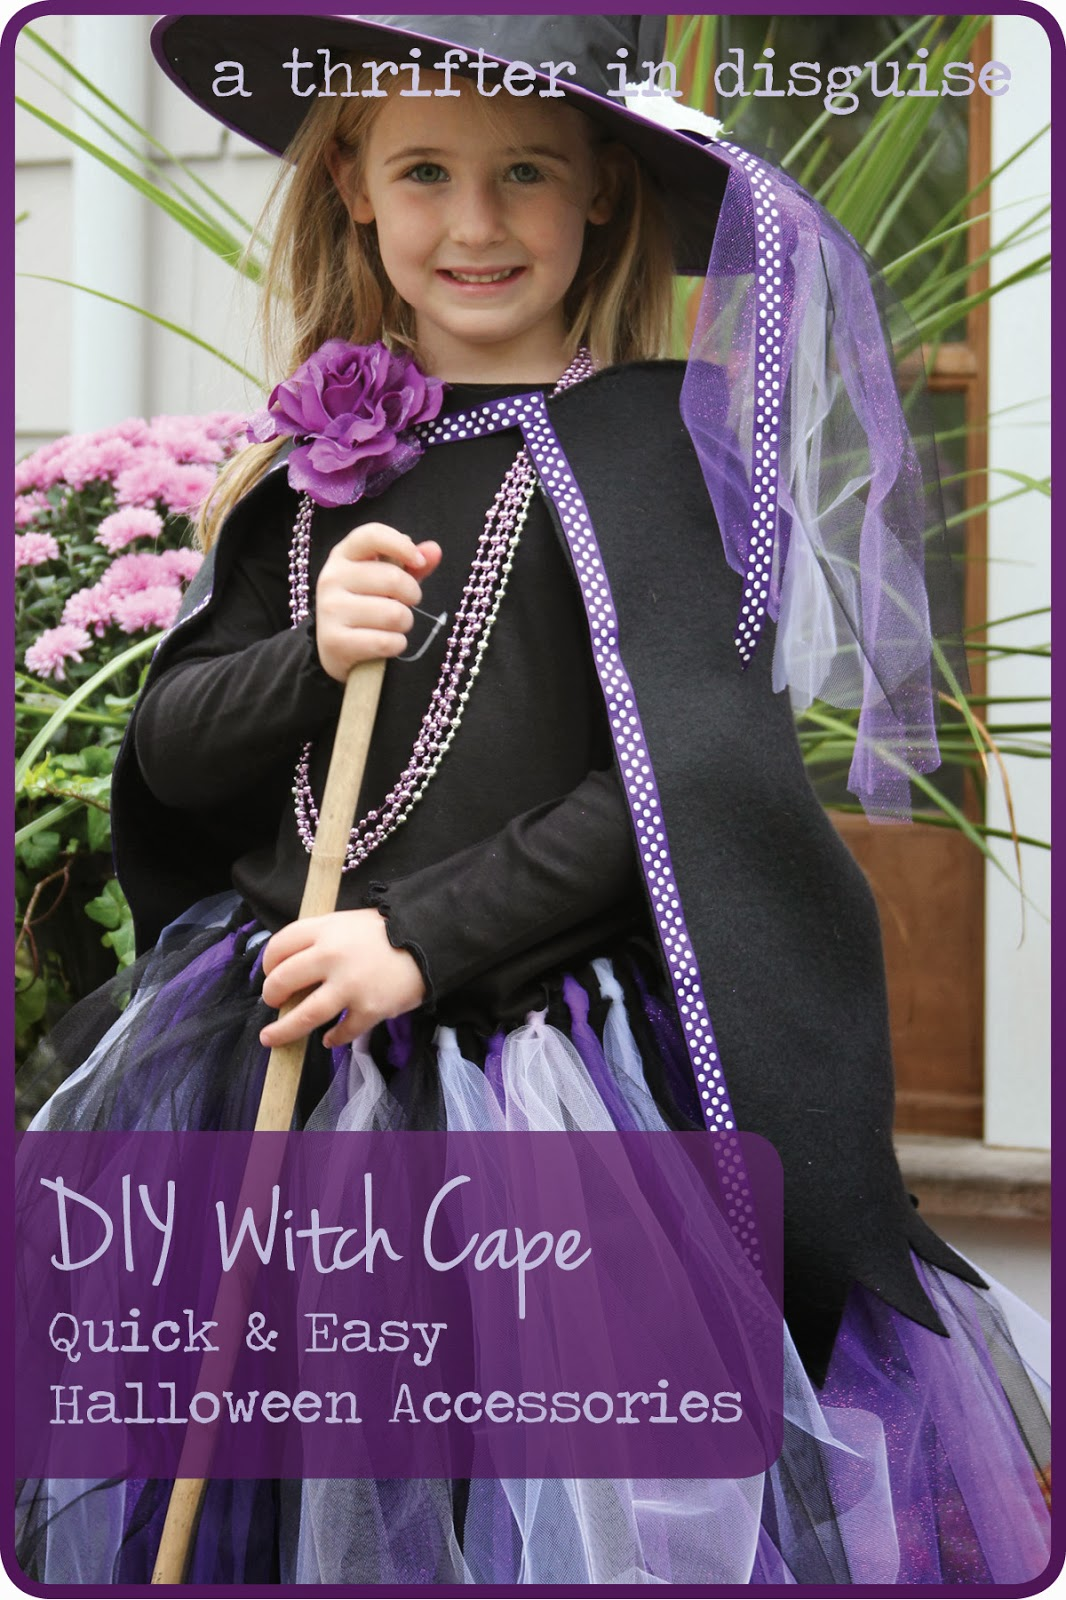 These capes were not part of my original plan for the girlsu0027 witch costumes (I really considered the Wicked Witch Tutus to be the pièce de résistance) ...  sc 1 st  A Thrifter in Disguise & A Thrifter in Disguise: Halloween Witch Costume Part 2: Fleece Cape